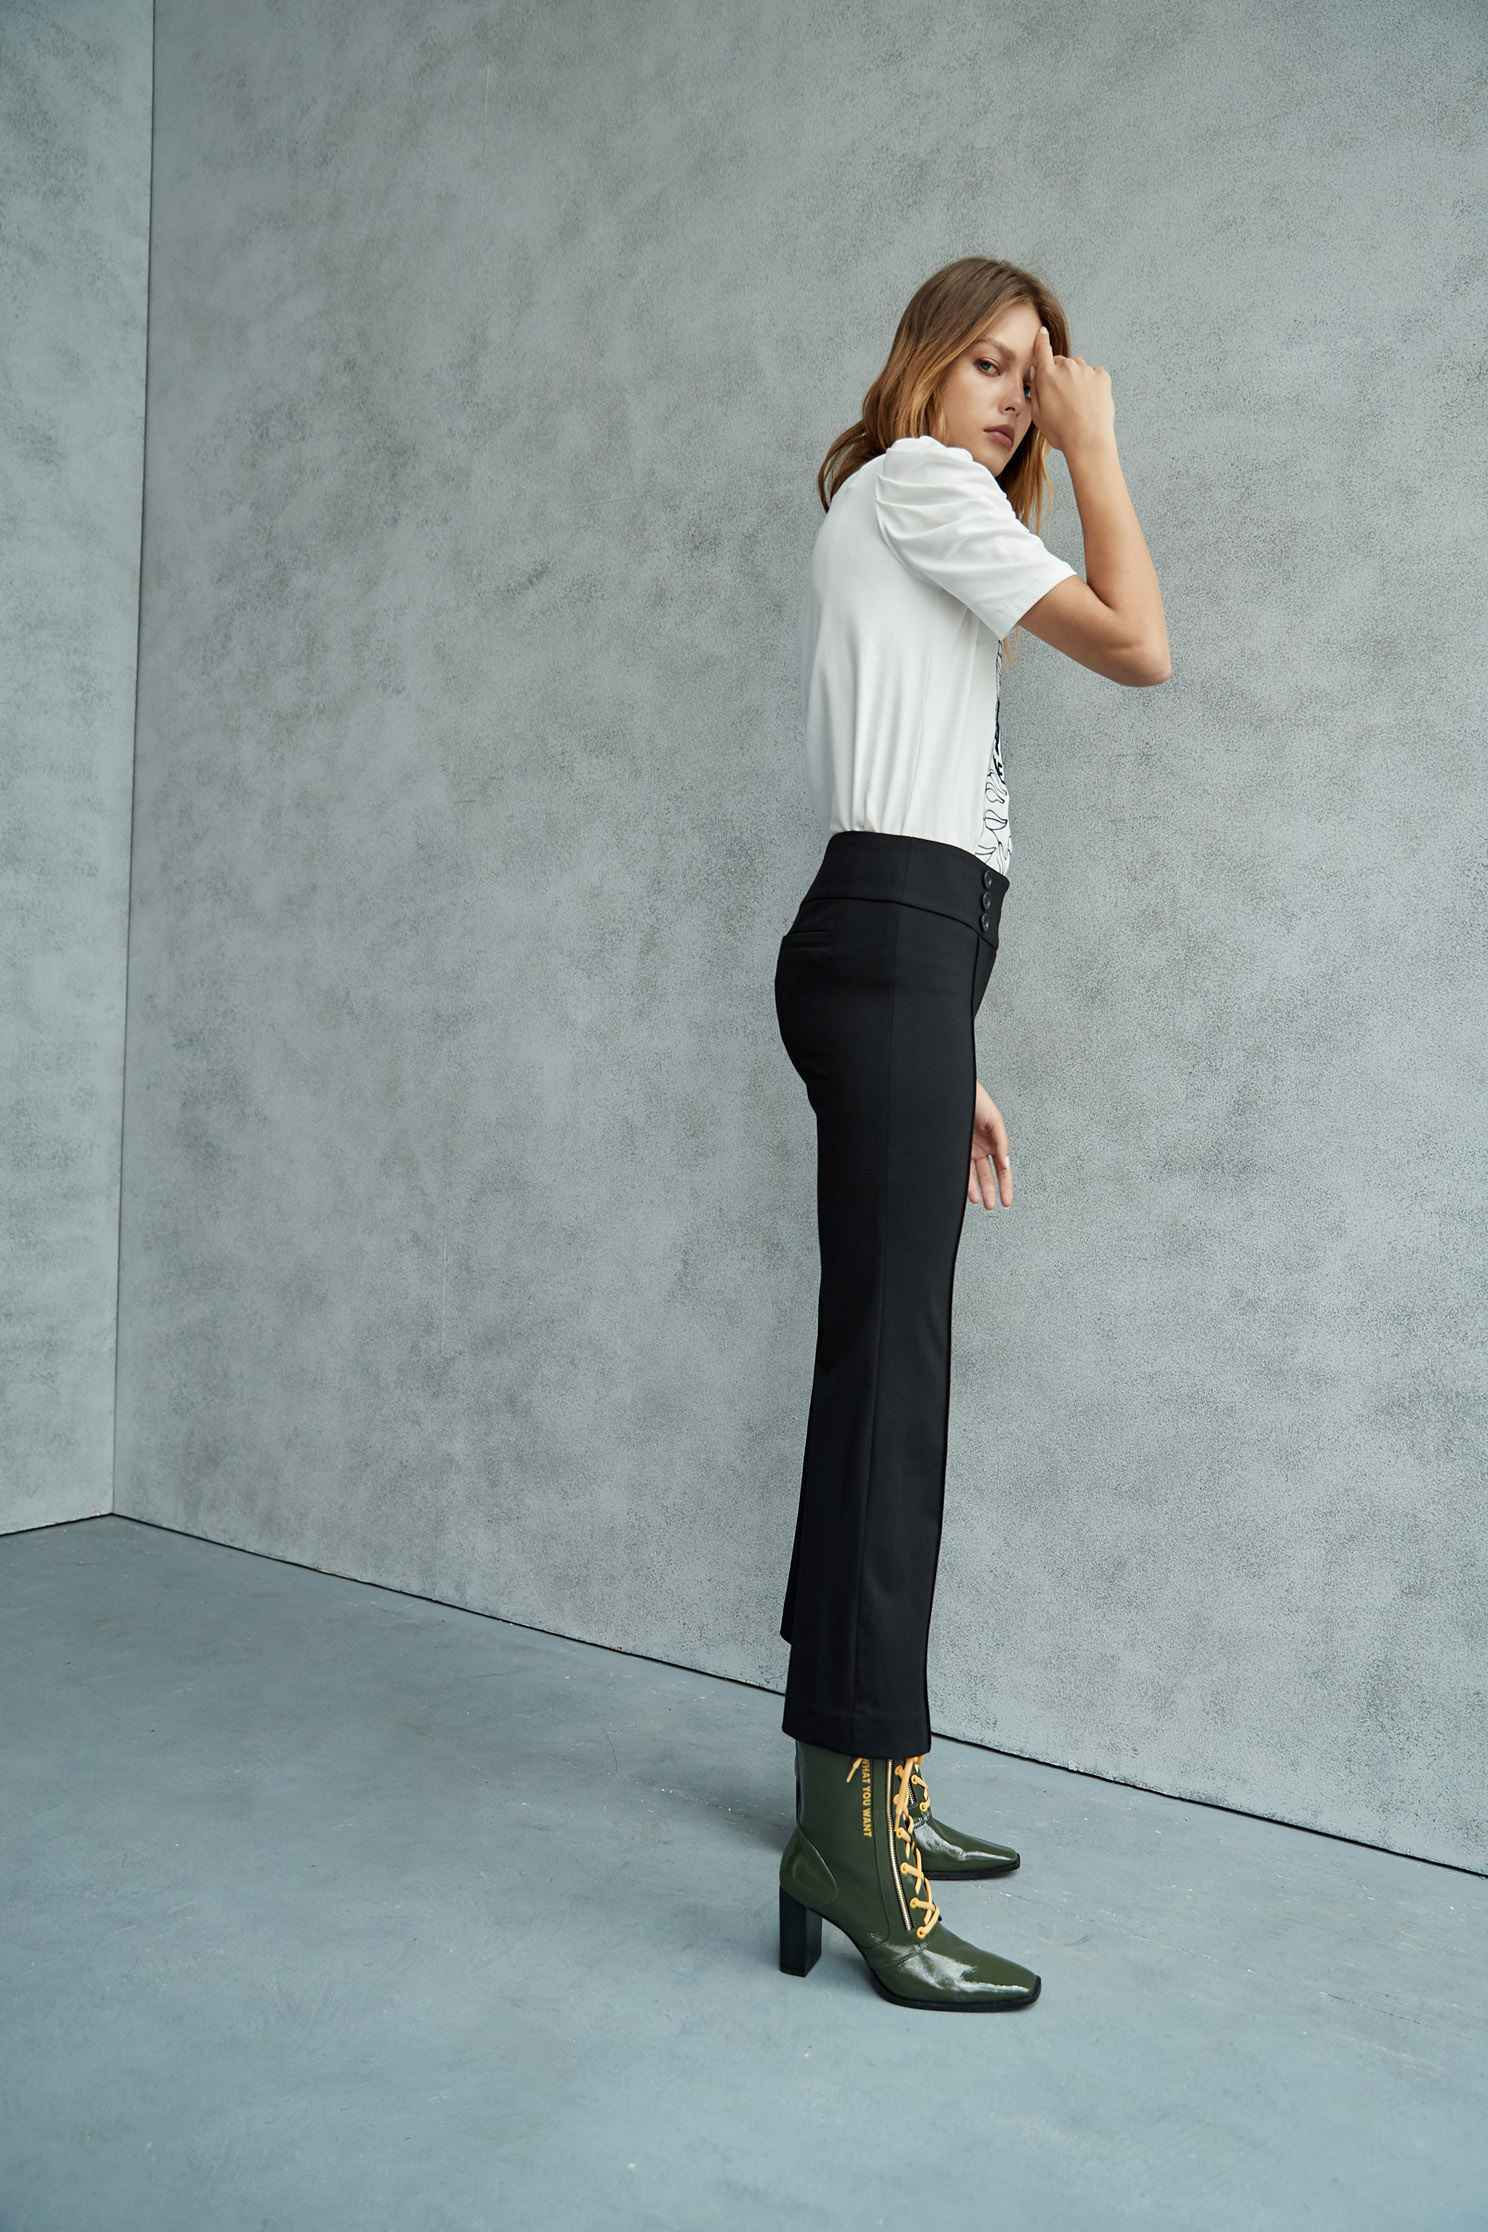 flared jeans,Tanning,Bell Bottom Jeans,cowboy,Jeans,Women's denim trousers,Pants,長褲,Thin pants,Black jeans,黑色褲子,Black trousers